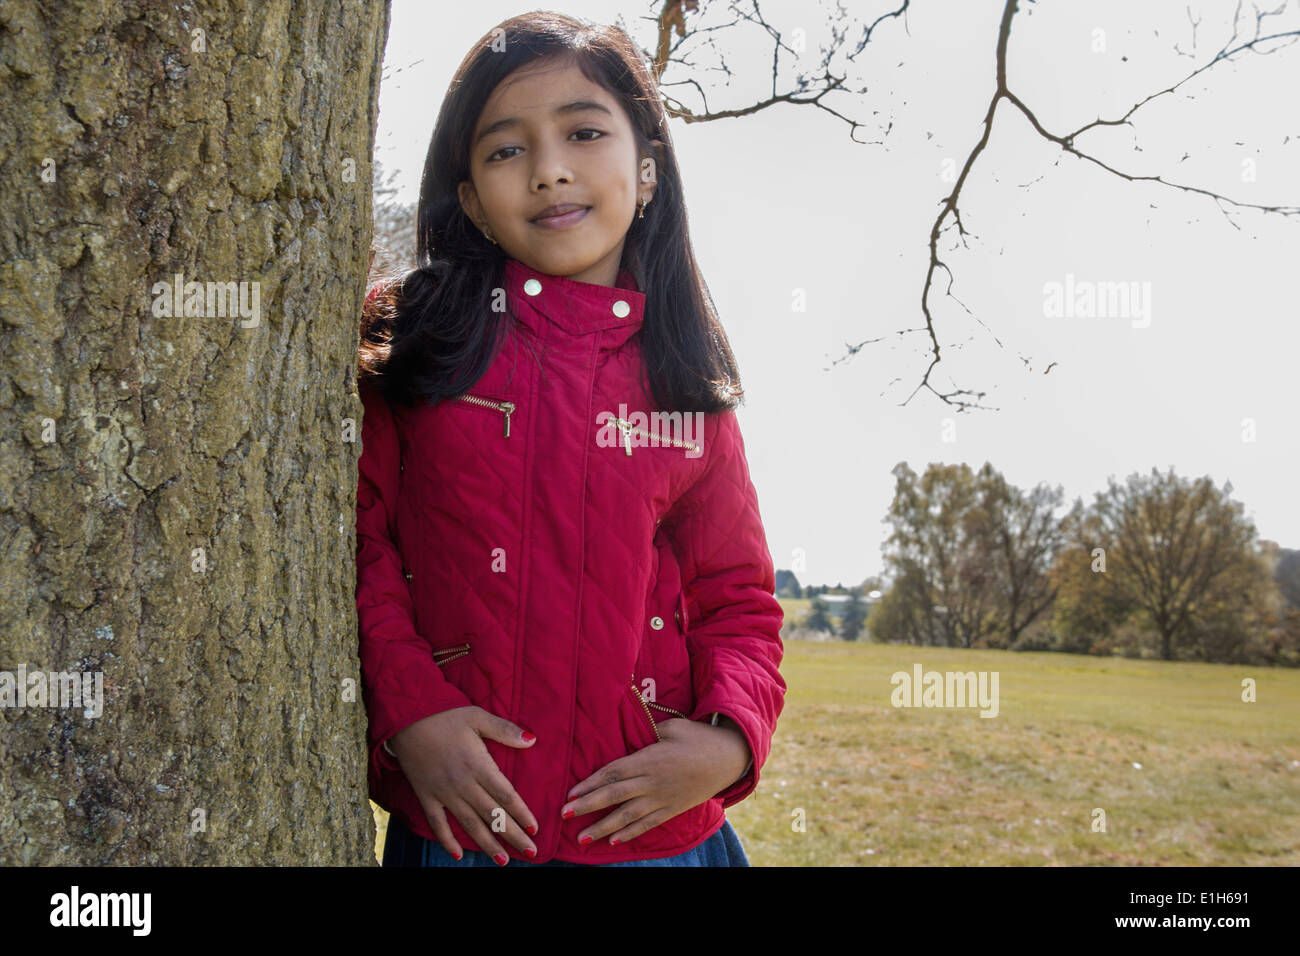 Portrait of girl leaning against tree trunk - Stock Image